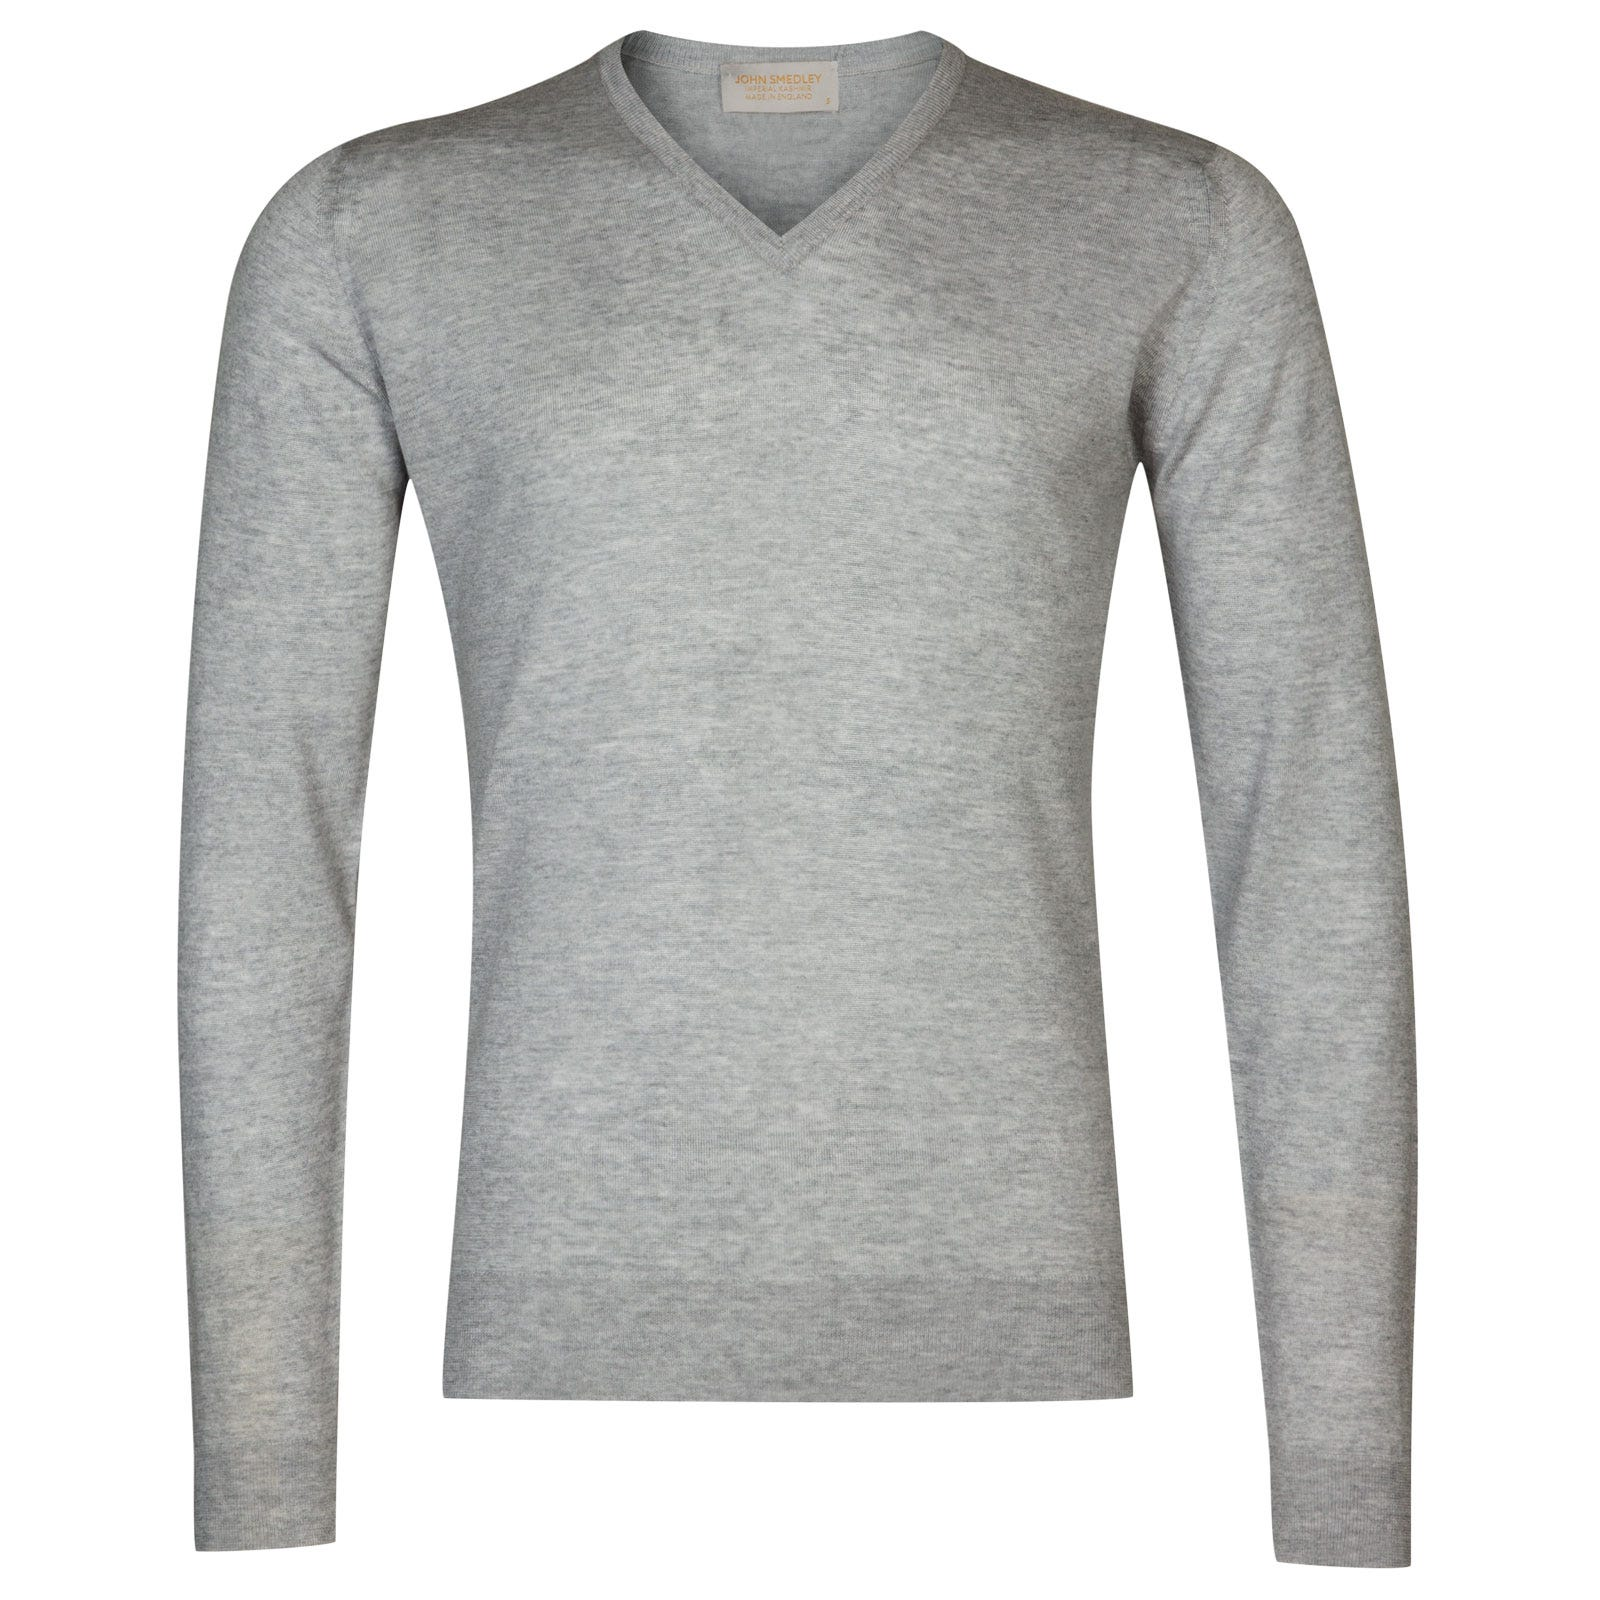 John Smedley newark Merino Wool and Cashmere Pullover in Soft Grey-S